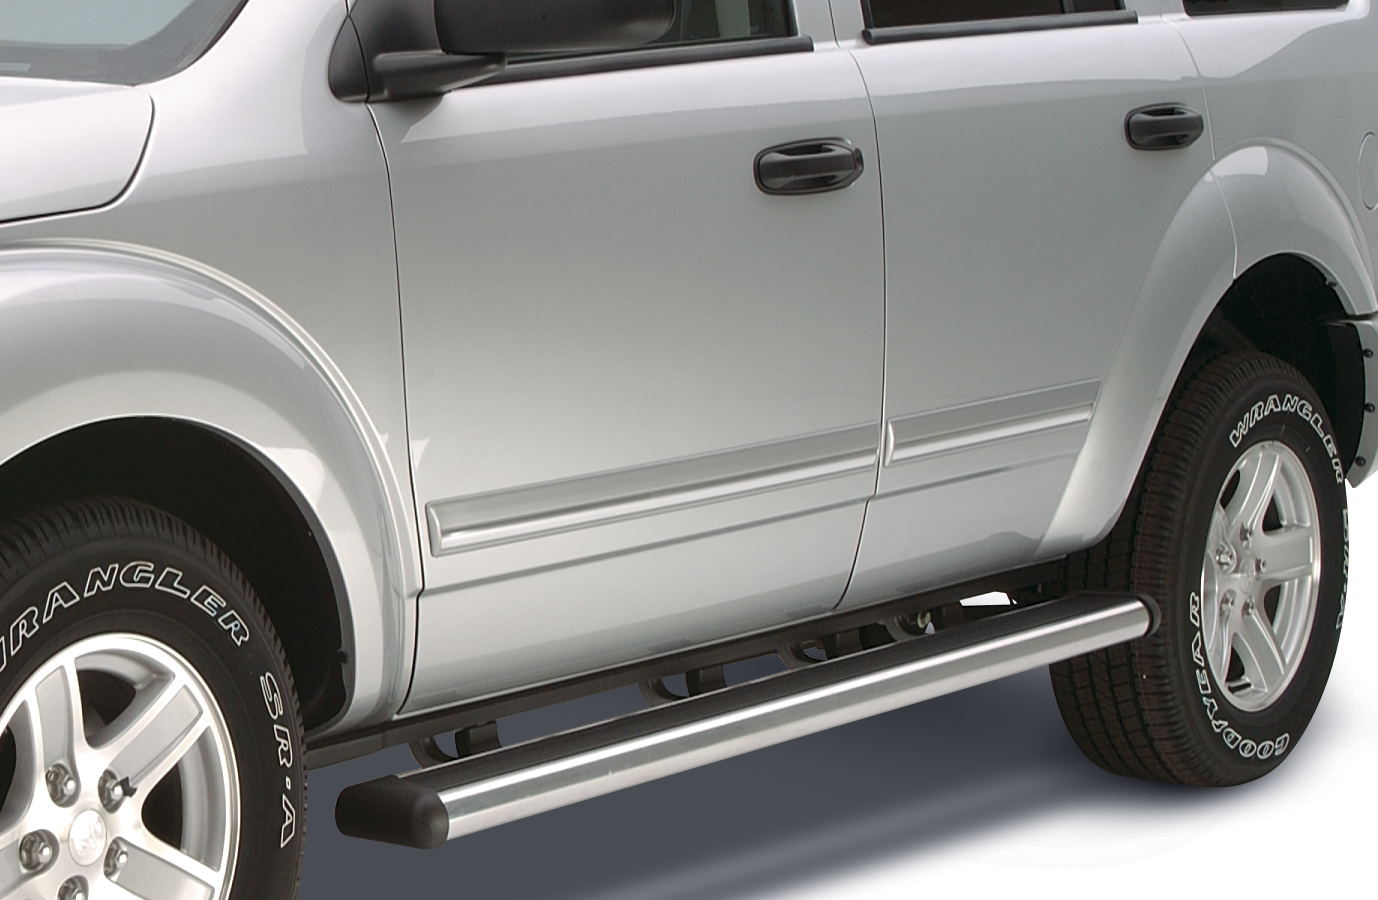 Ats Edge Running Board Ats Design Edge Running Boards